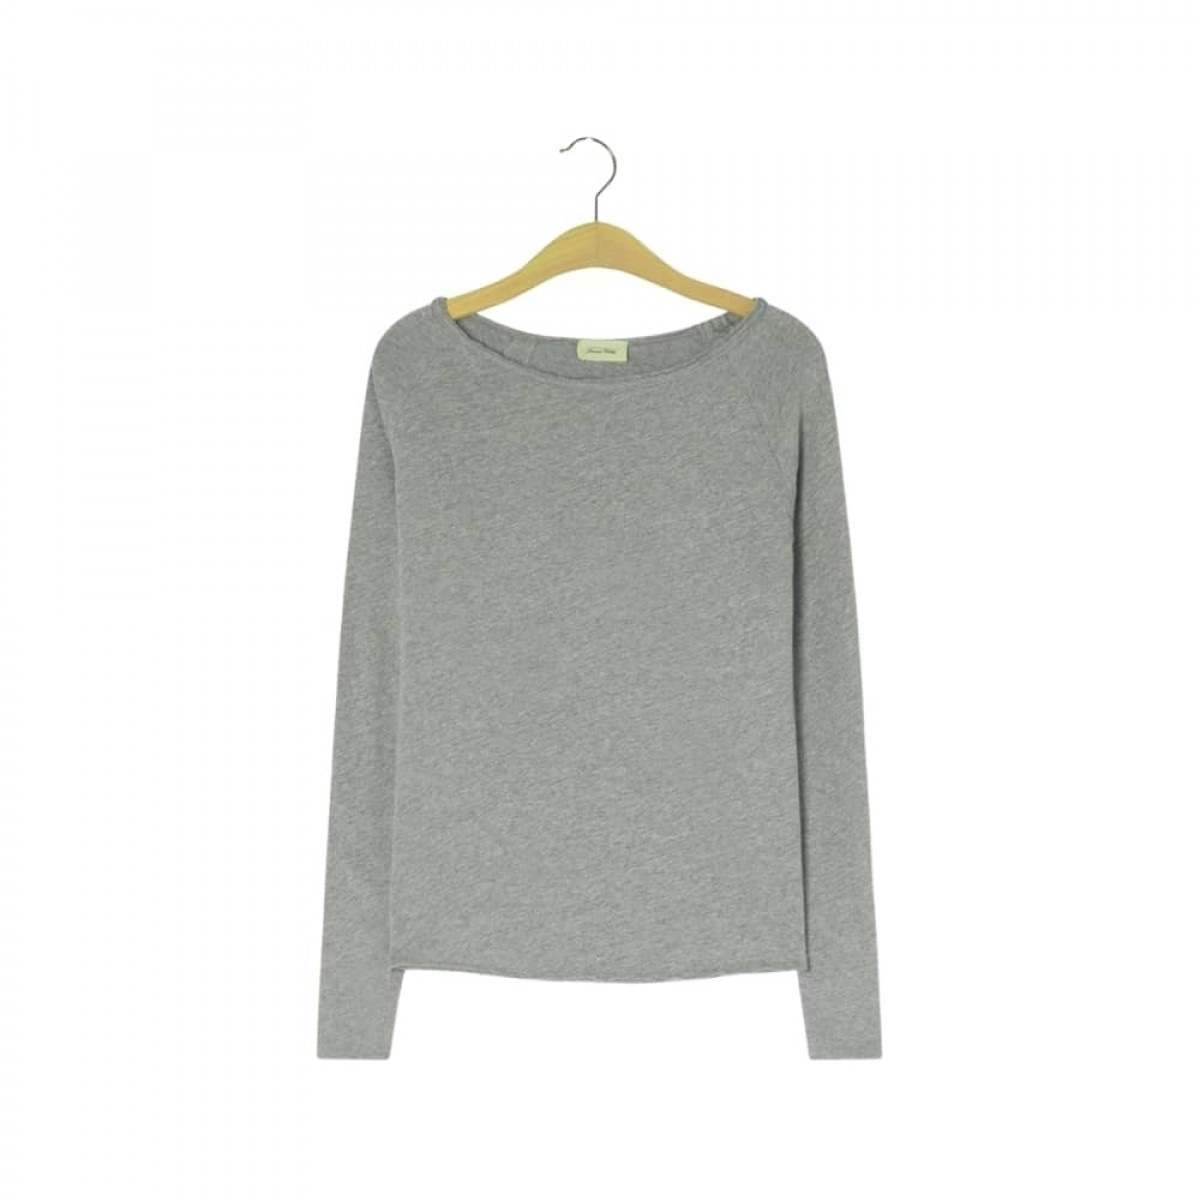 sonoma bluse - heather grey - front